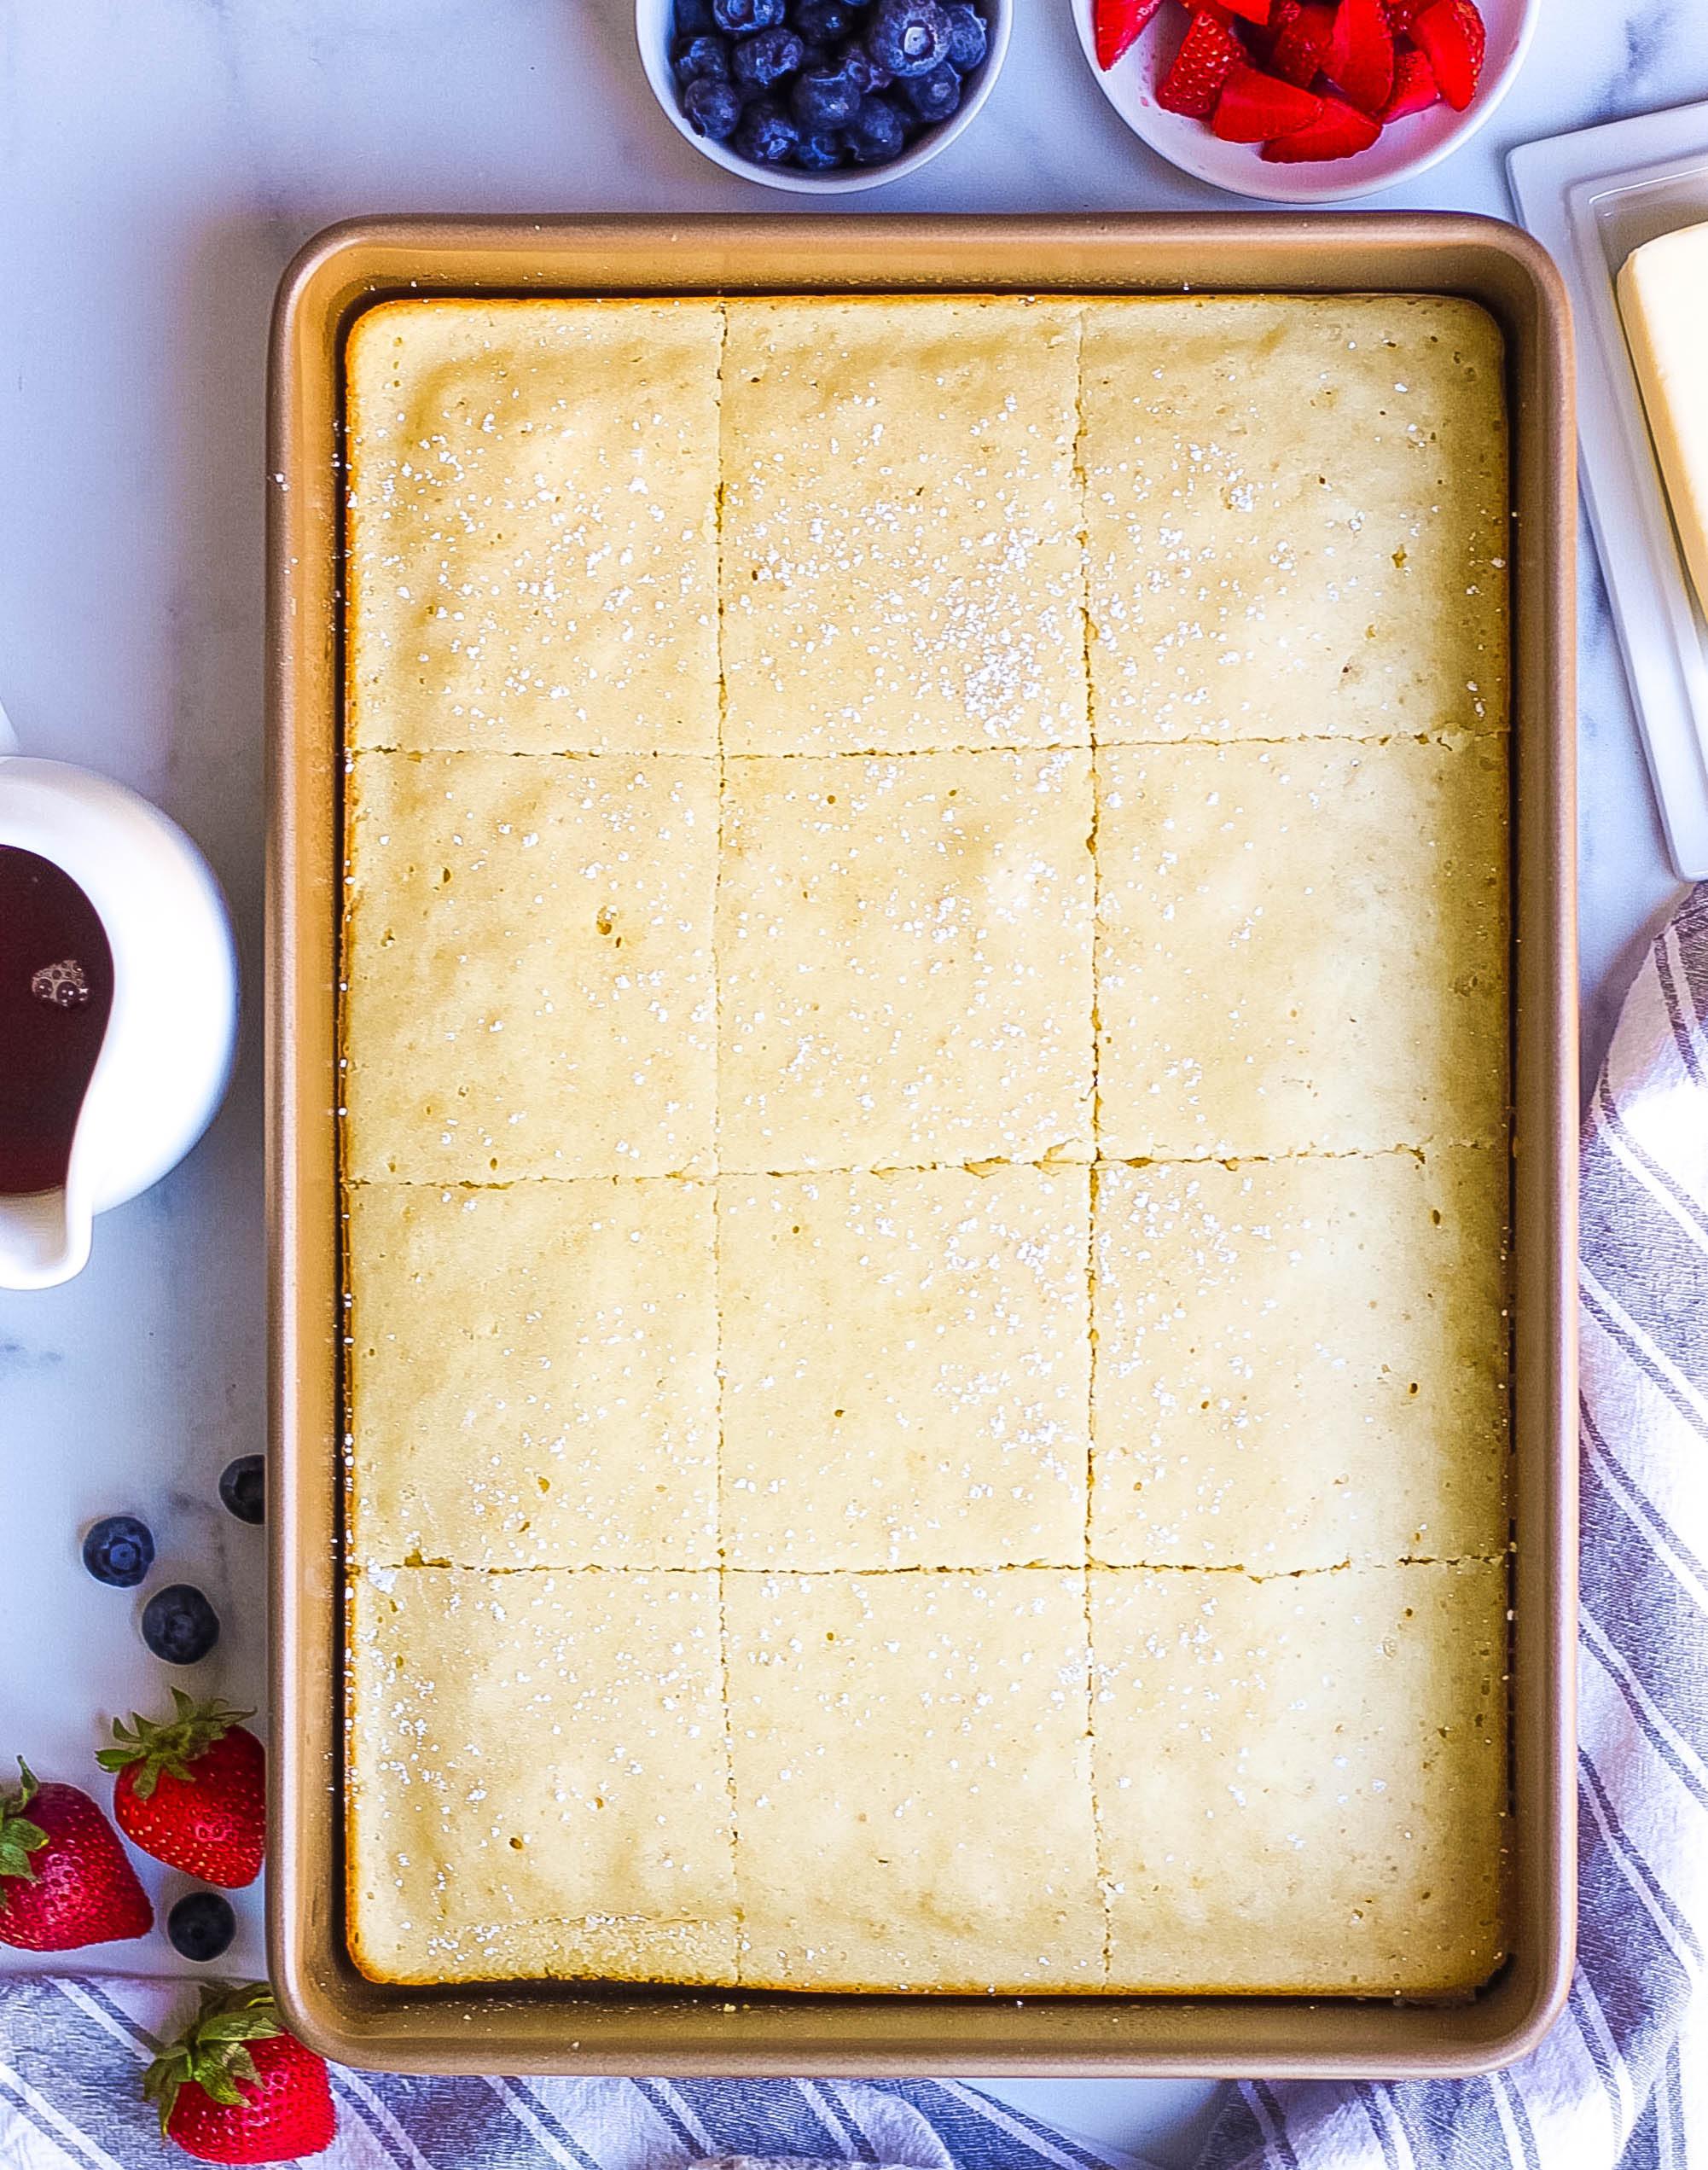 baked pancakes cut into squares